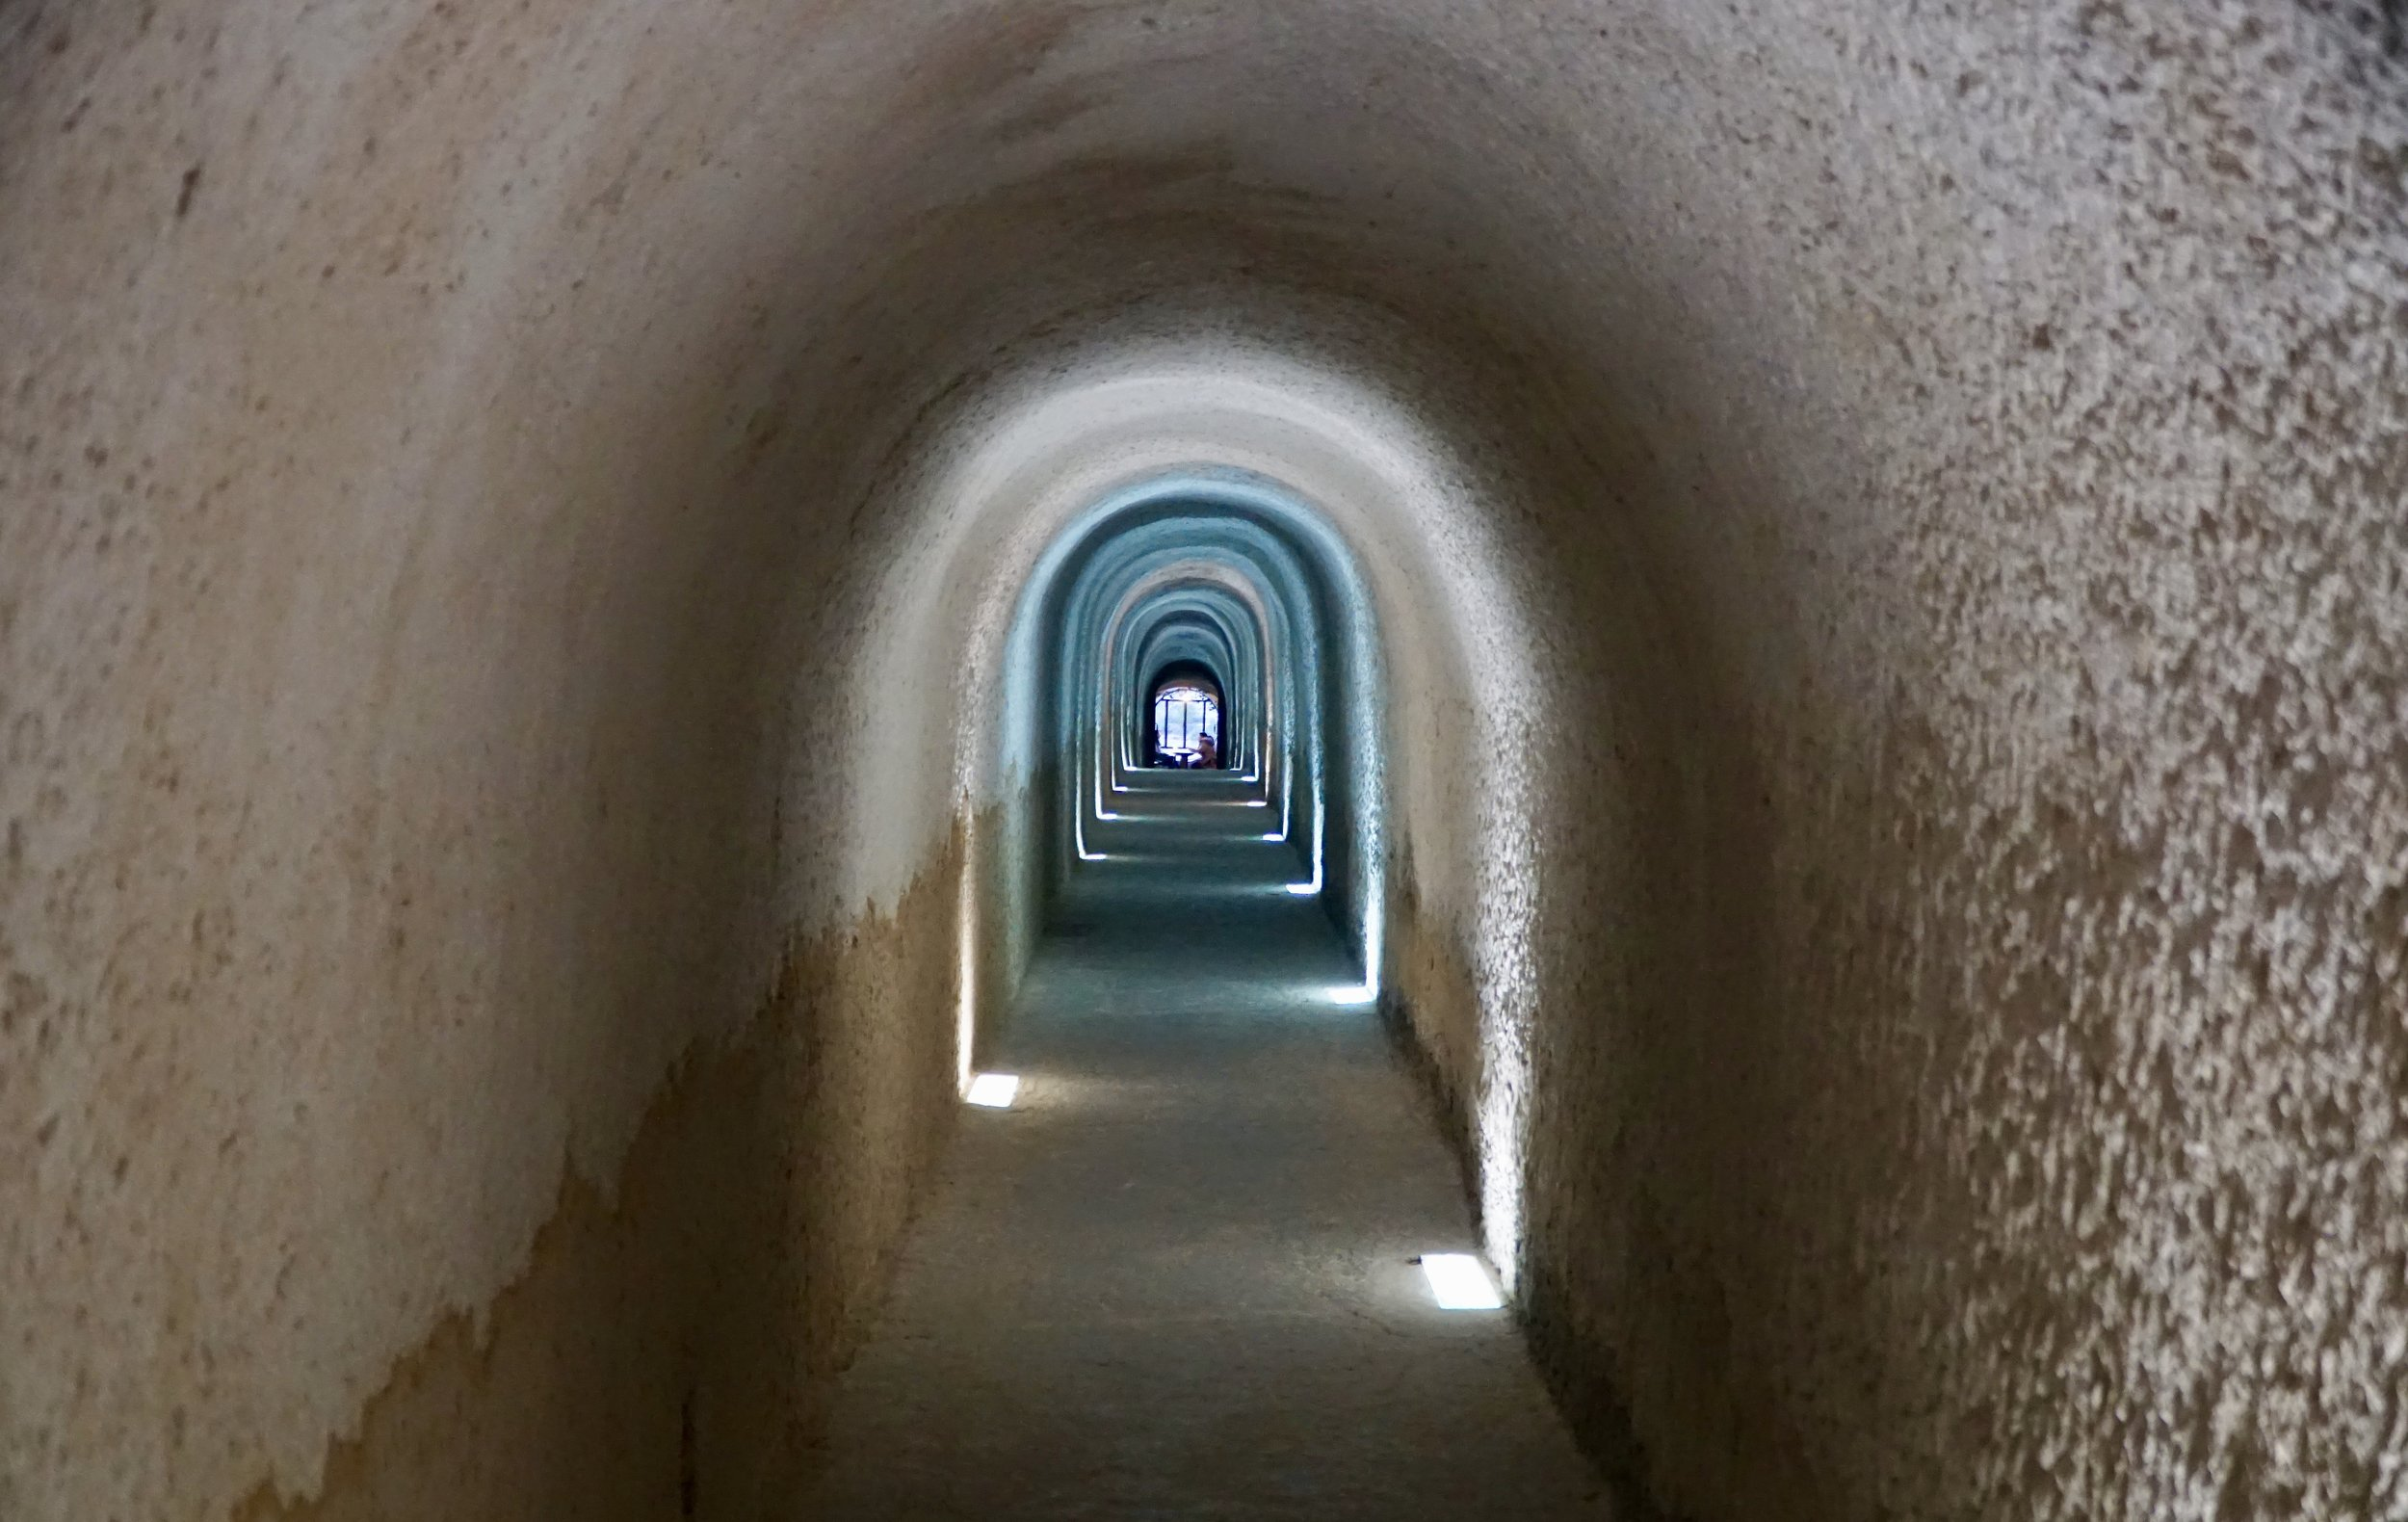 Bar at the end of the tunnel